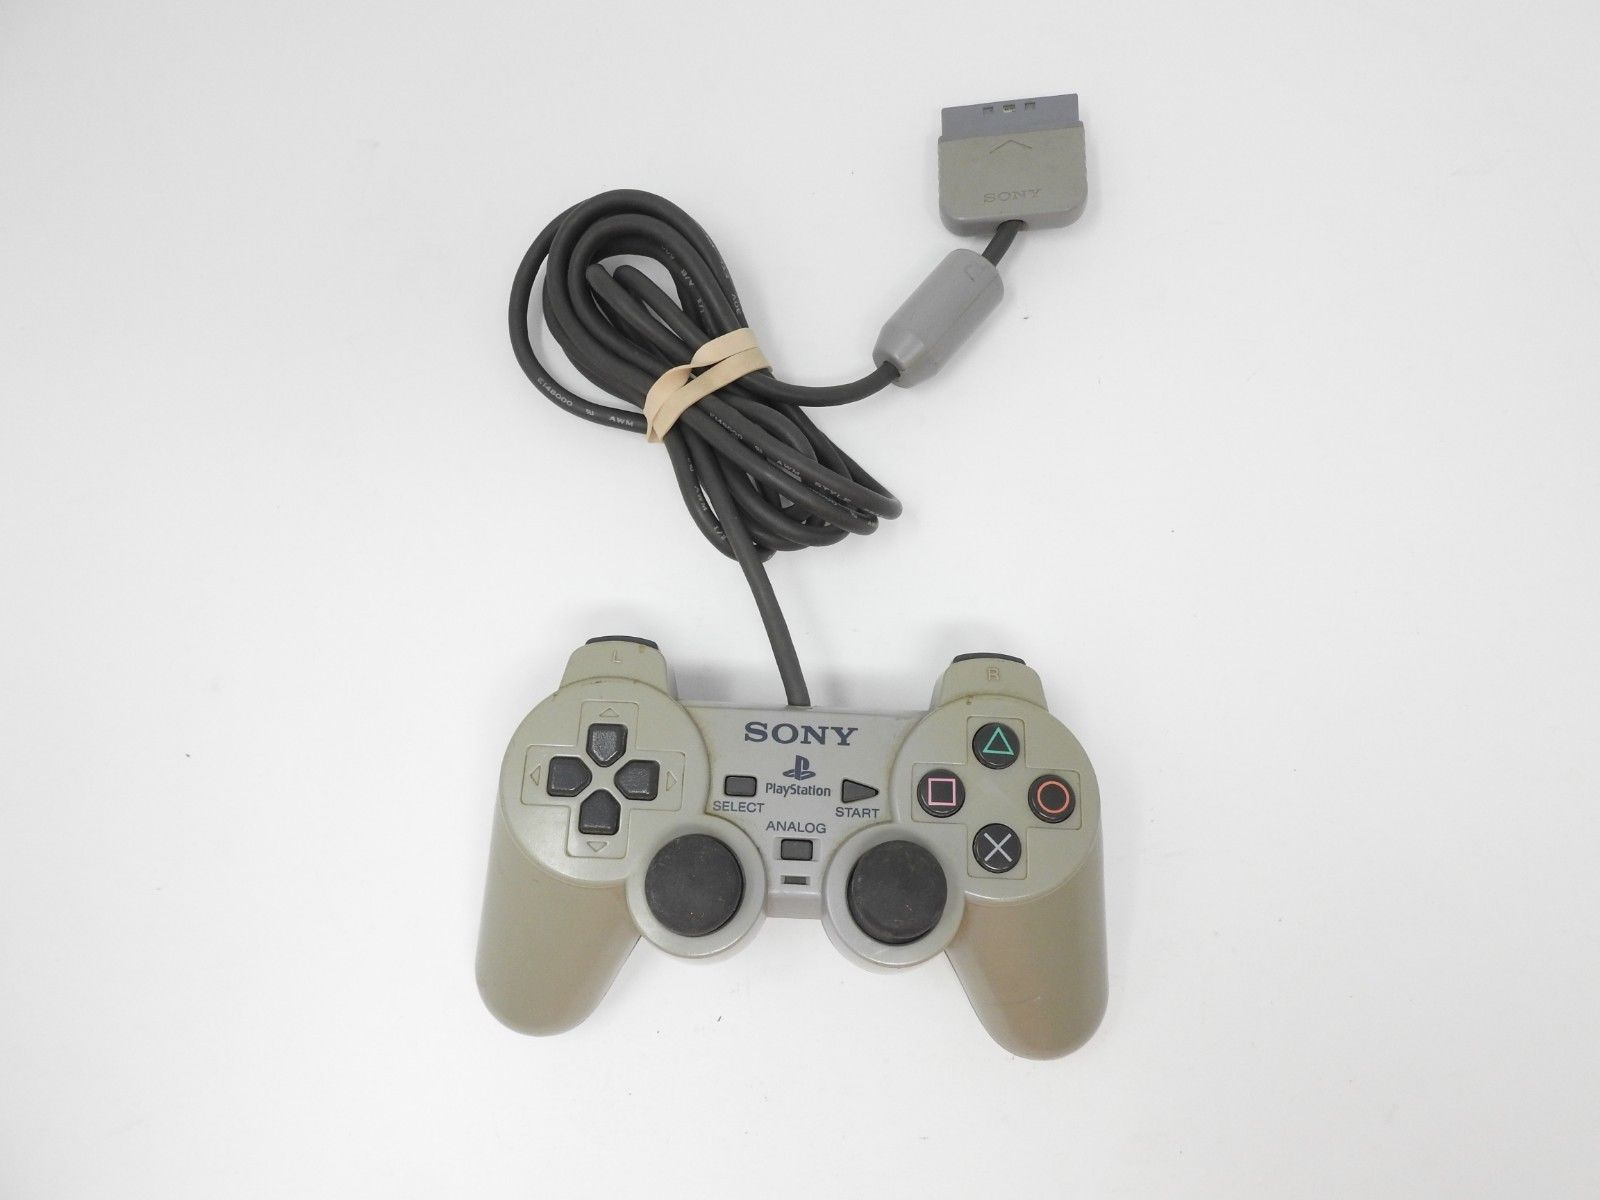 Sony PlayStation 1 Analog Controllers (Gray) - Usually ships within 12 hours!!!